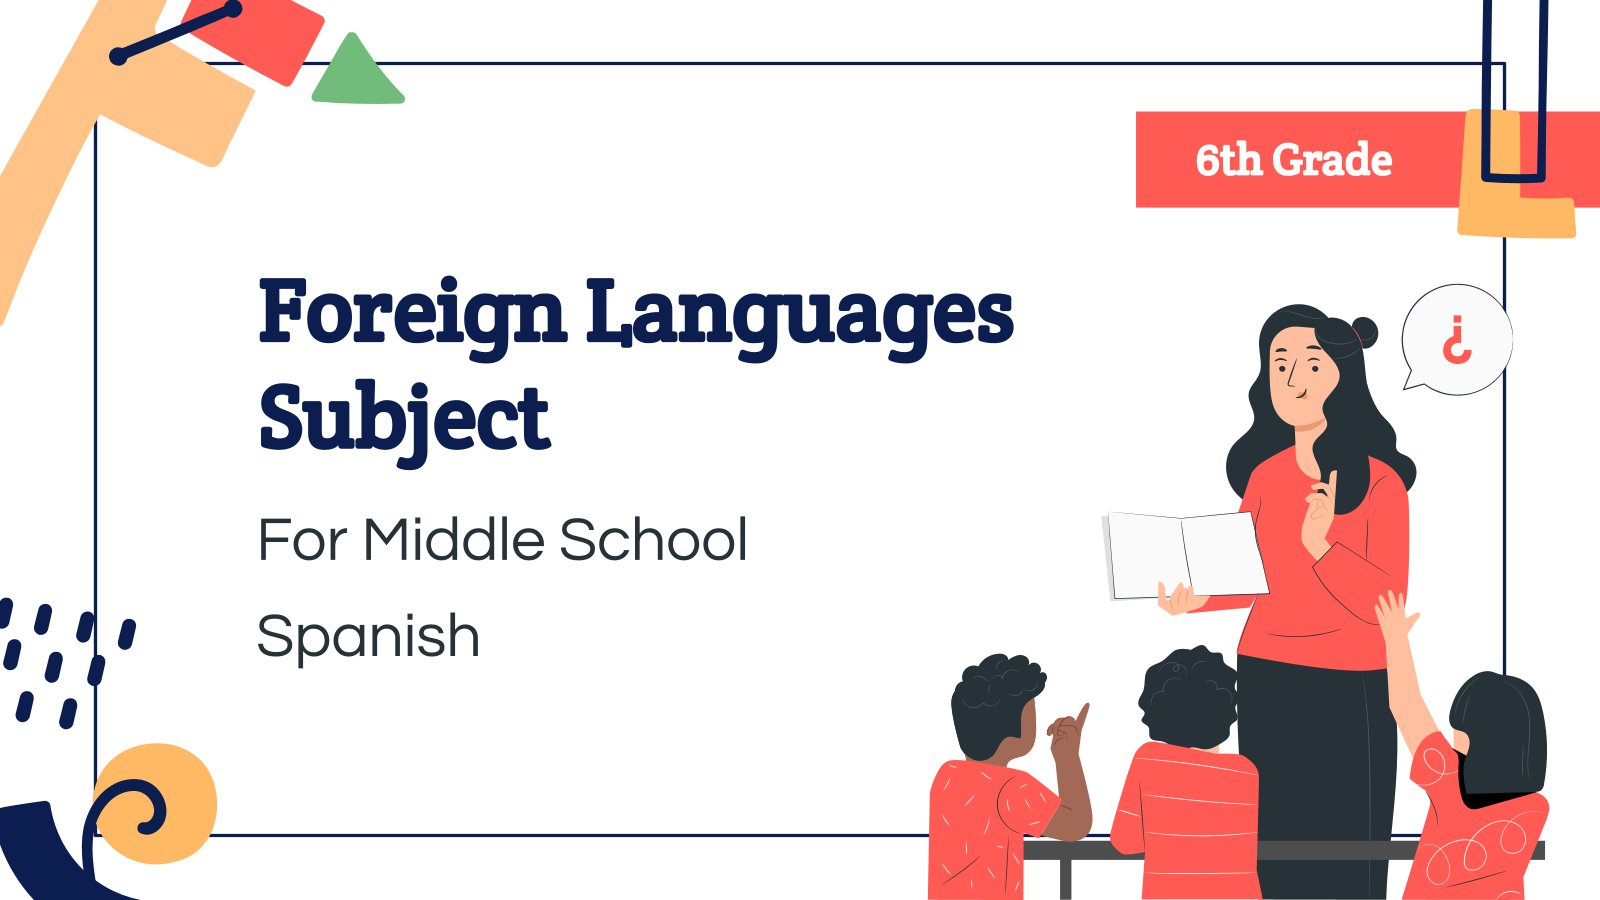 Foreign Languages Subject for Middle School - 6th Grade: Spanish presentation template